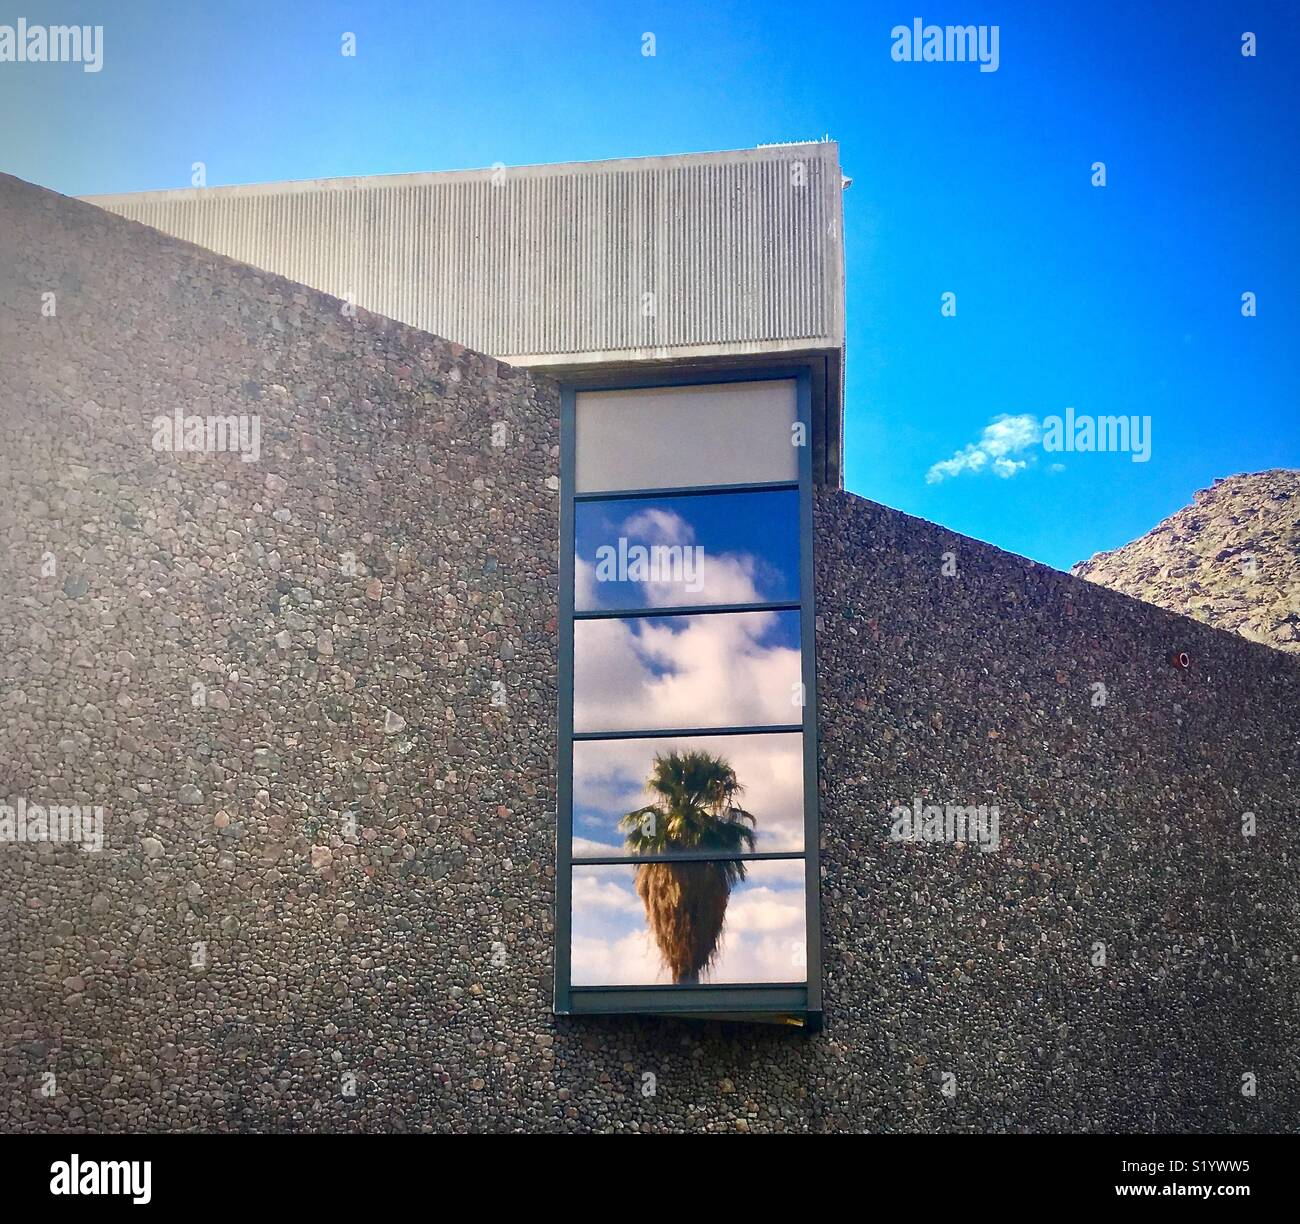 Palm tree reflection in window of modern concrete building - Stock Image